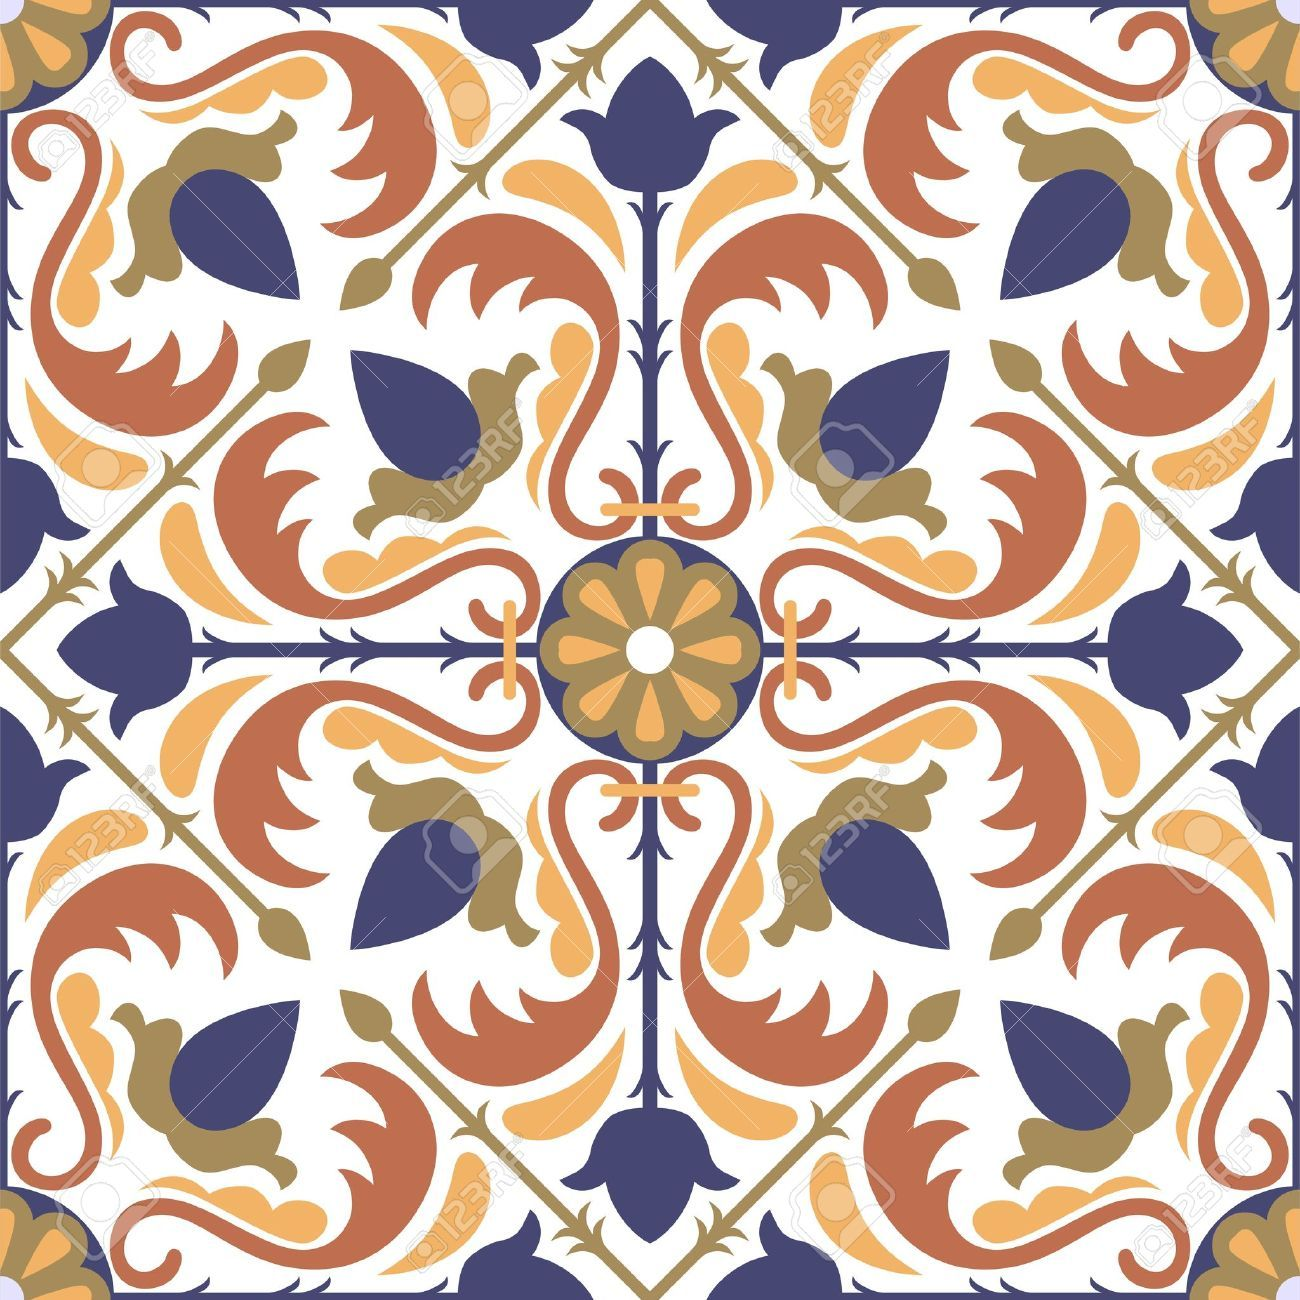 Illustration of colorful arabic style tiles seamless pattern vector art clipart and stock vectors